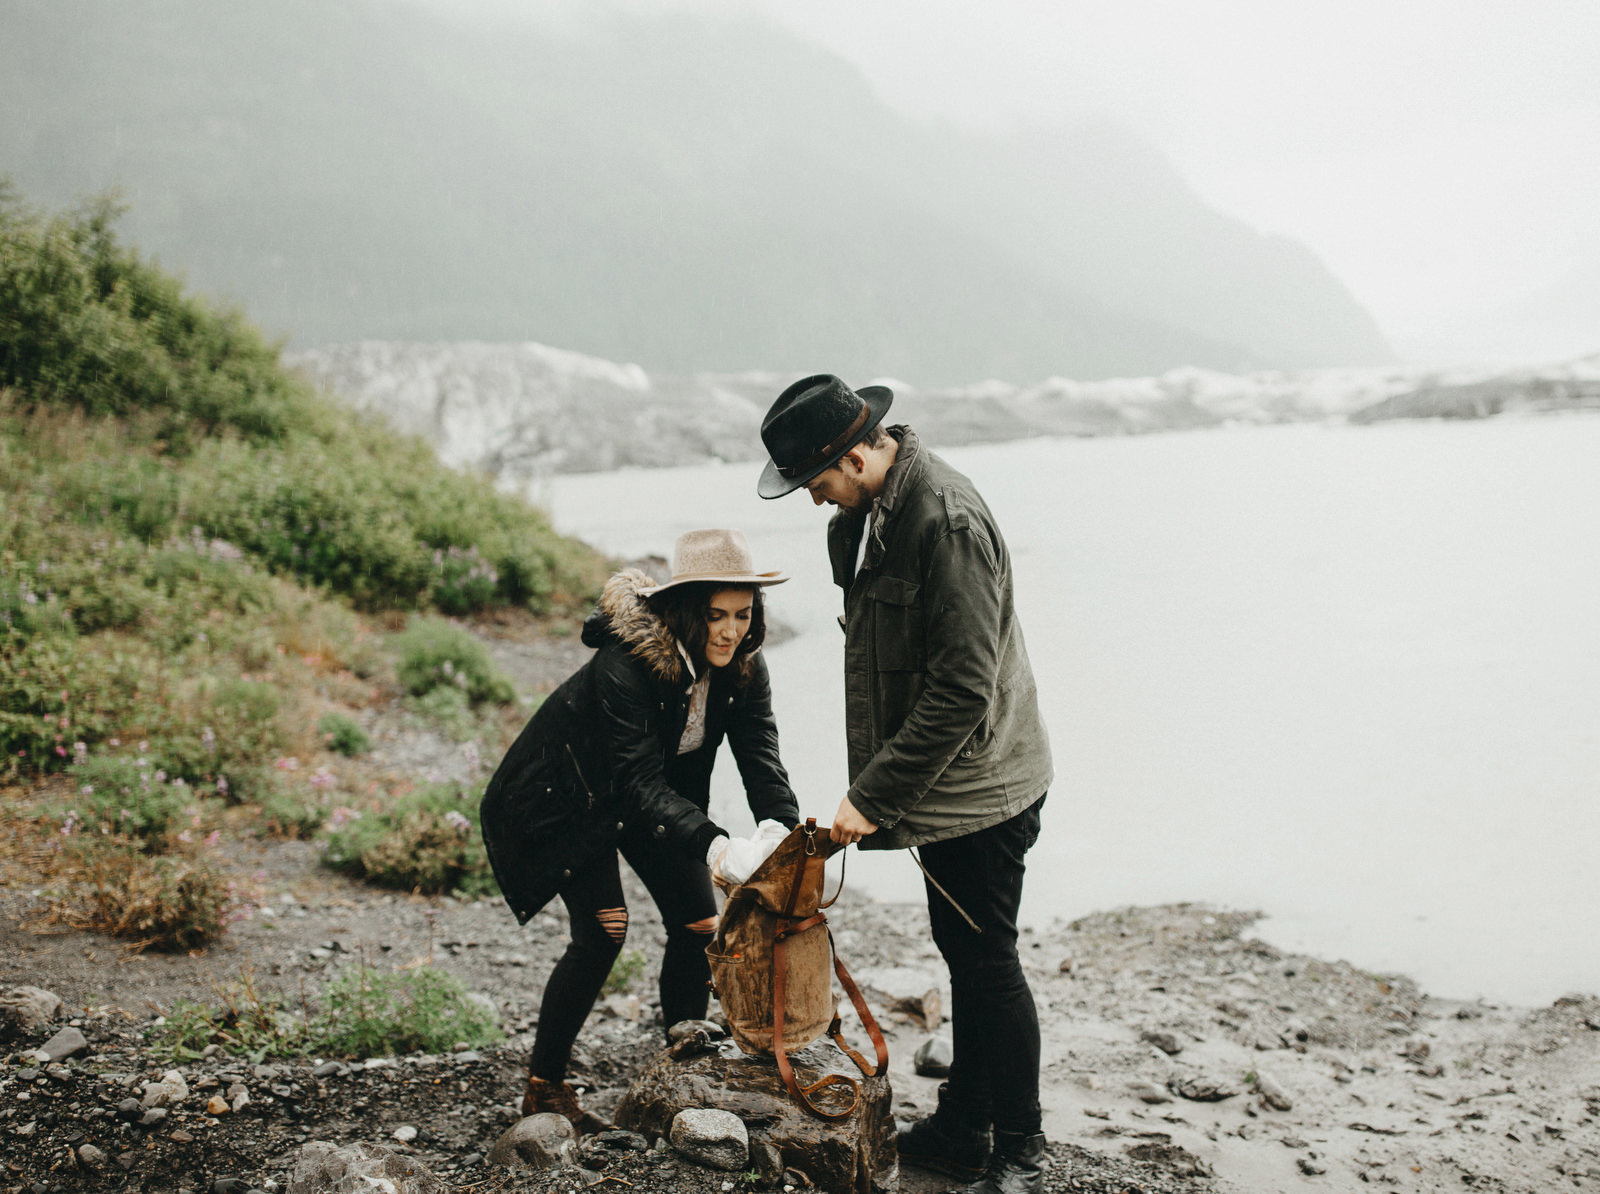 athena-and-camron-alaska-elopement-wedding-inspiration-india-earl-athena-grace-glacier-lagoon-wedding68